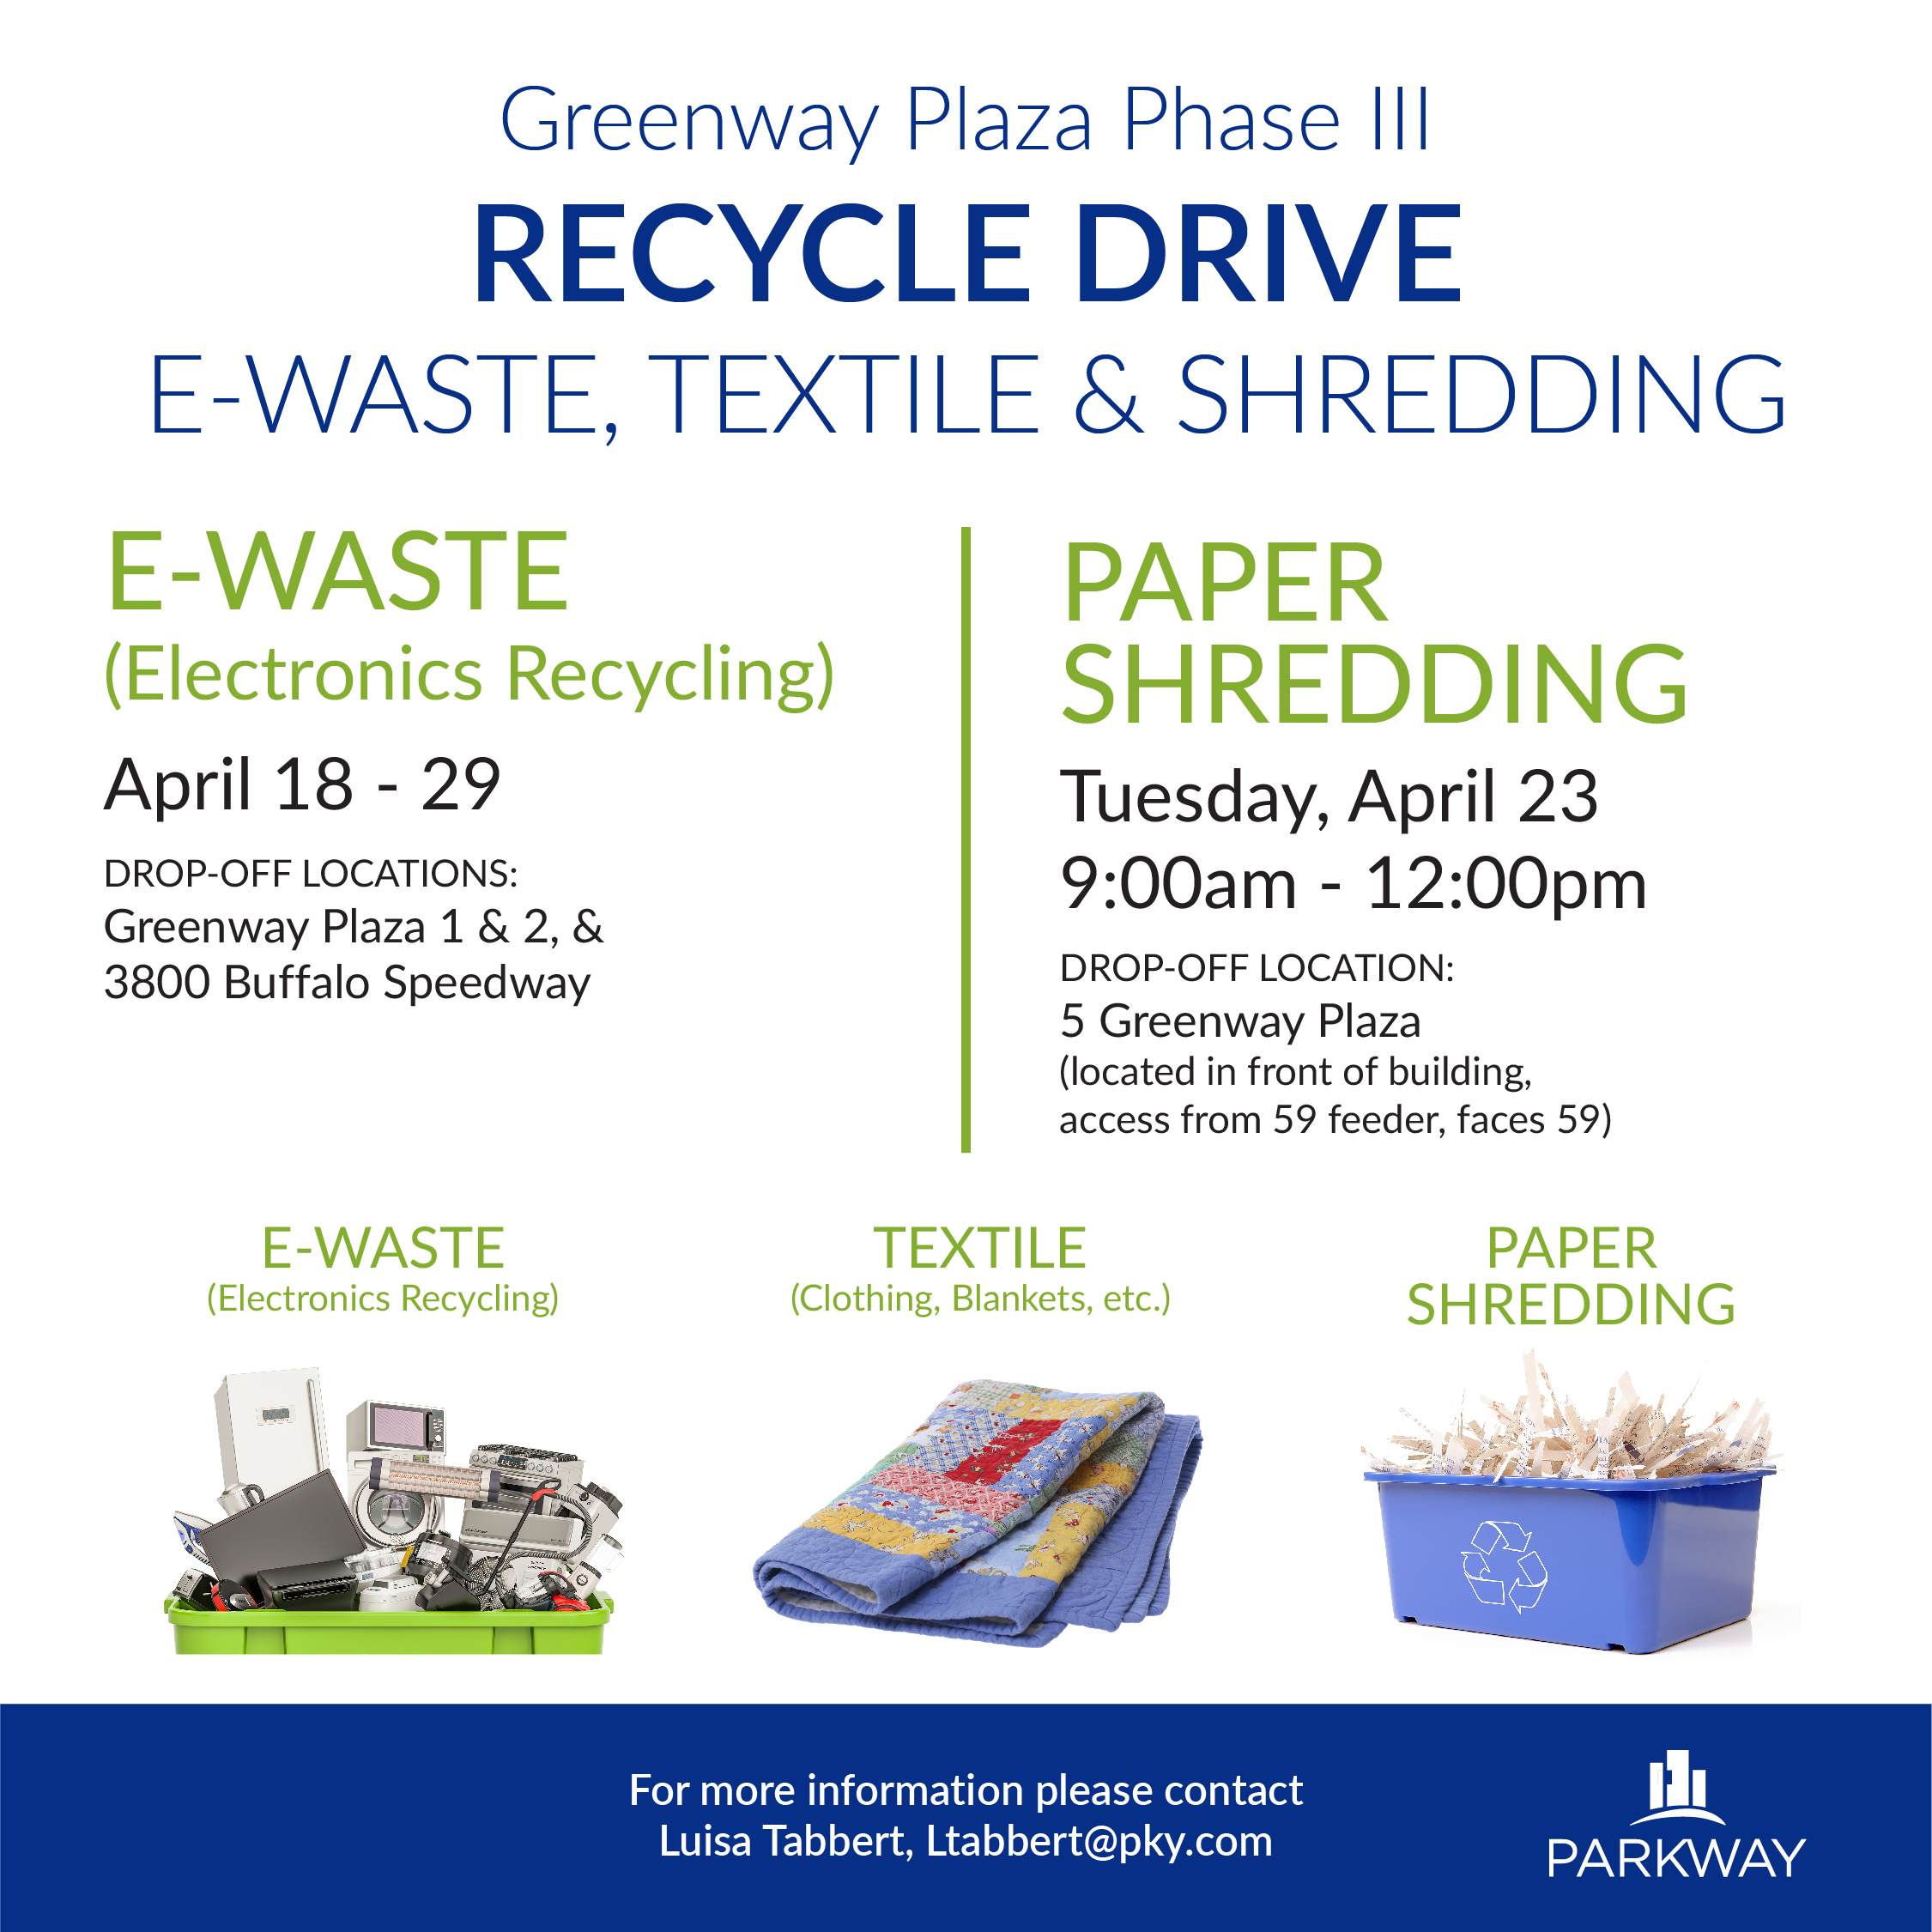 E-Waste and Shredding Drive | Greenway Plaza